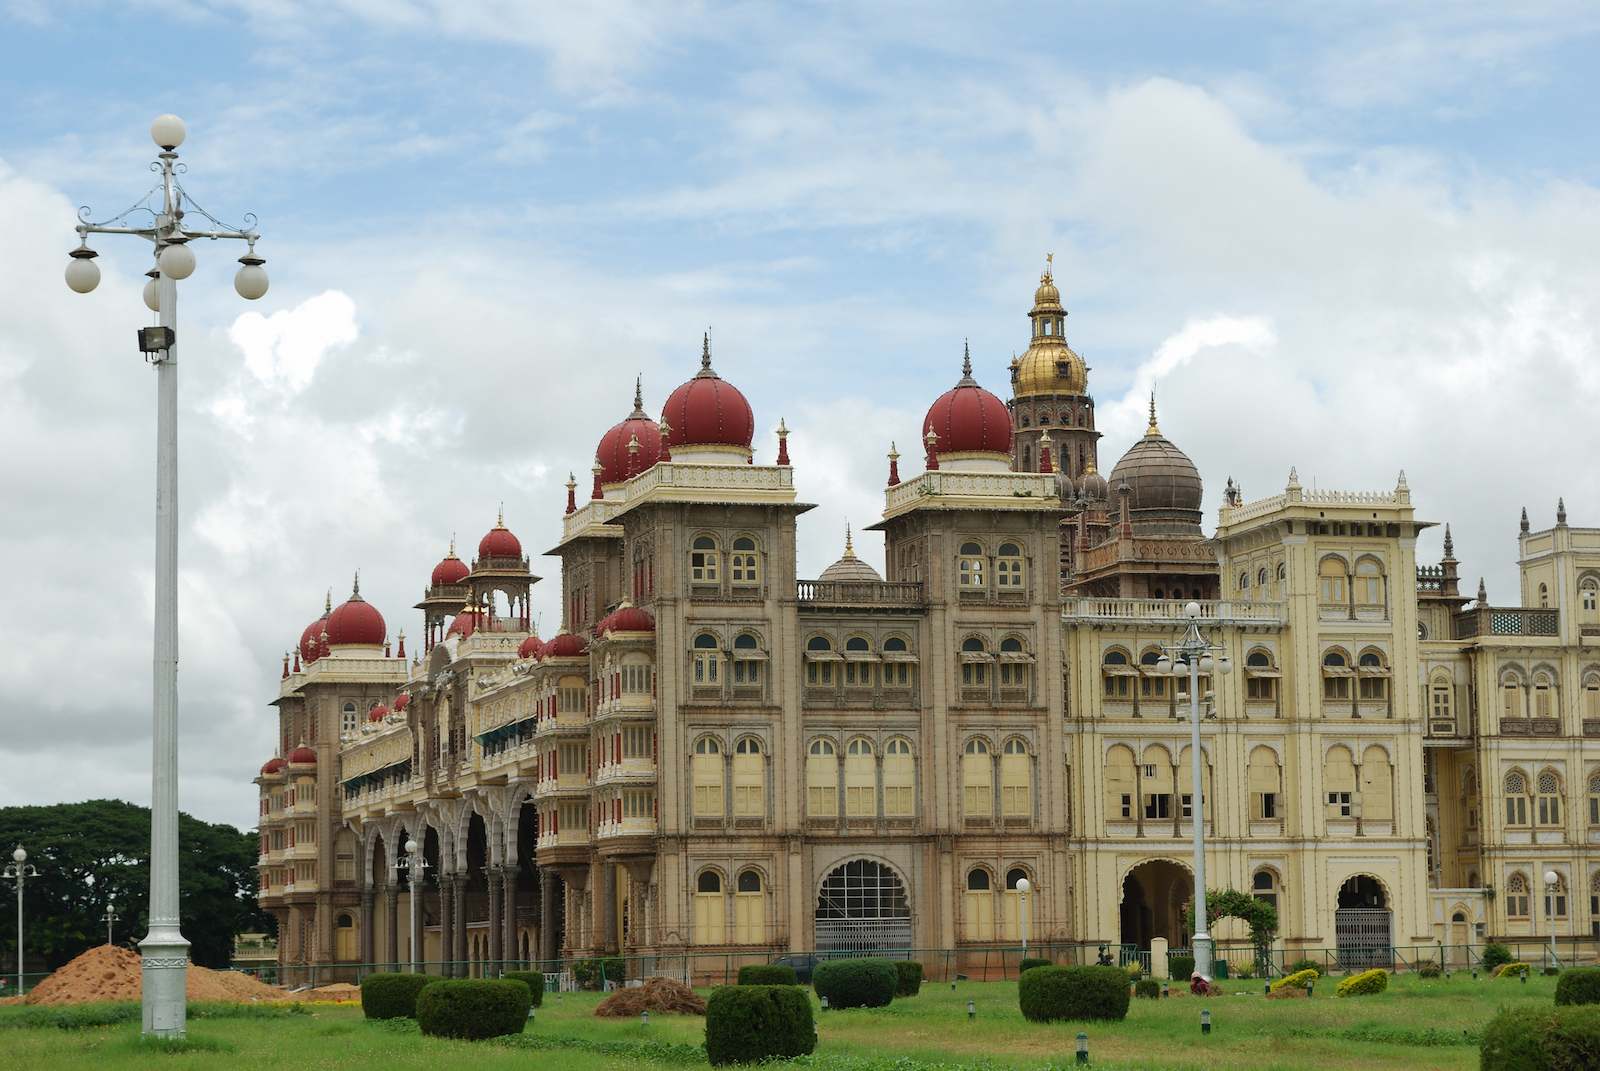 Maharaja's Palace in India